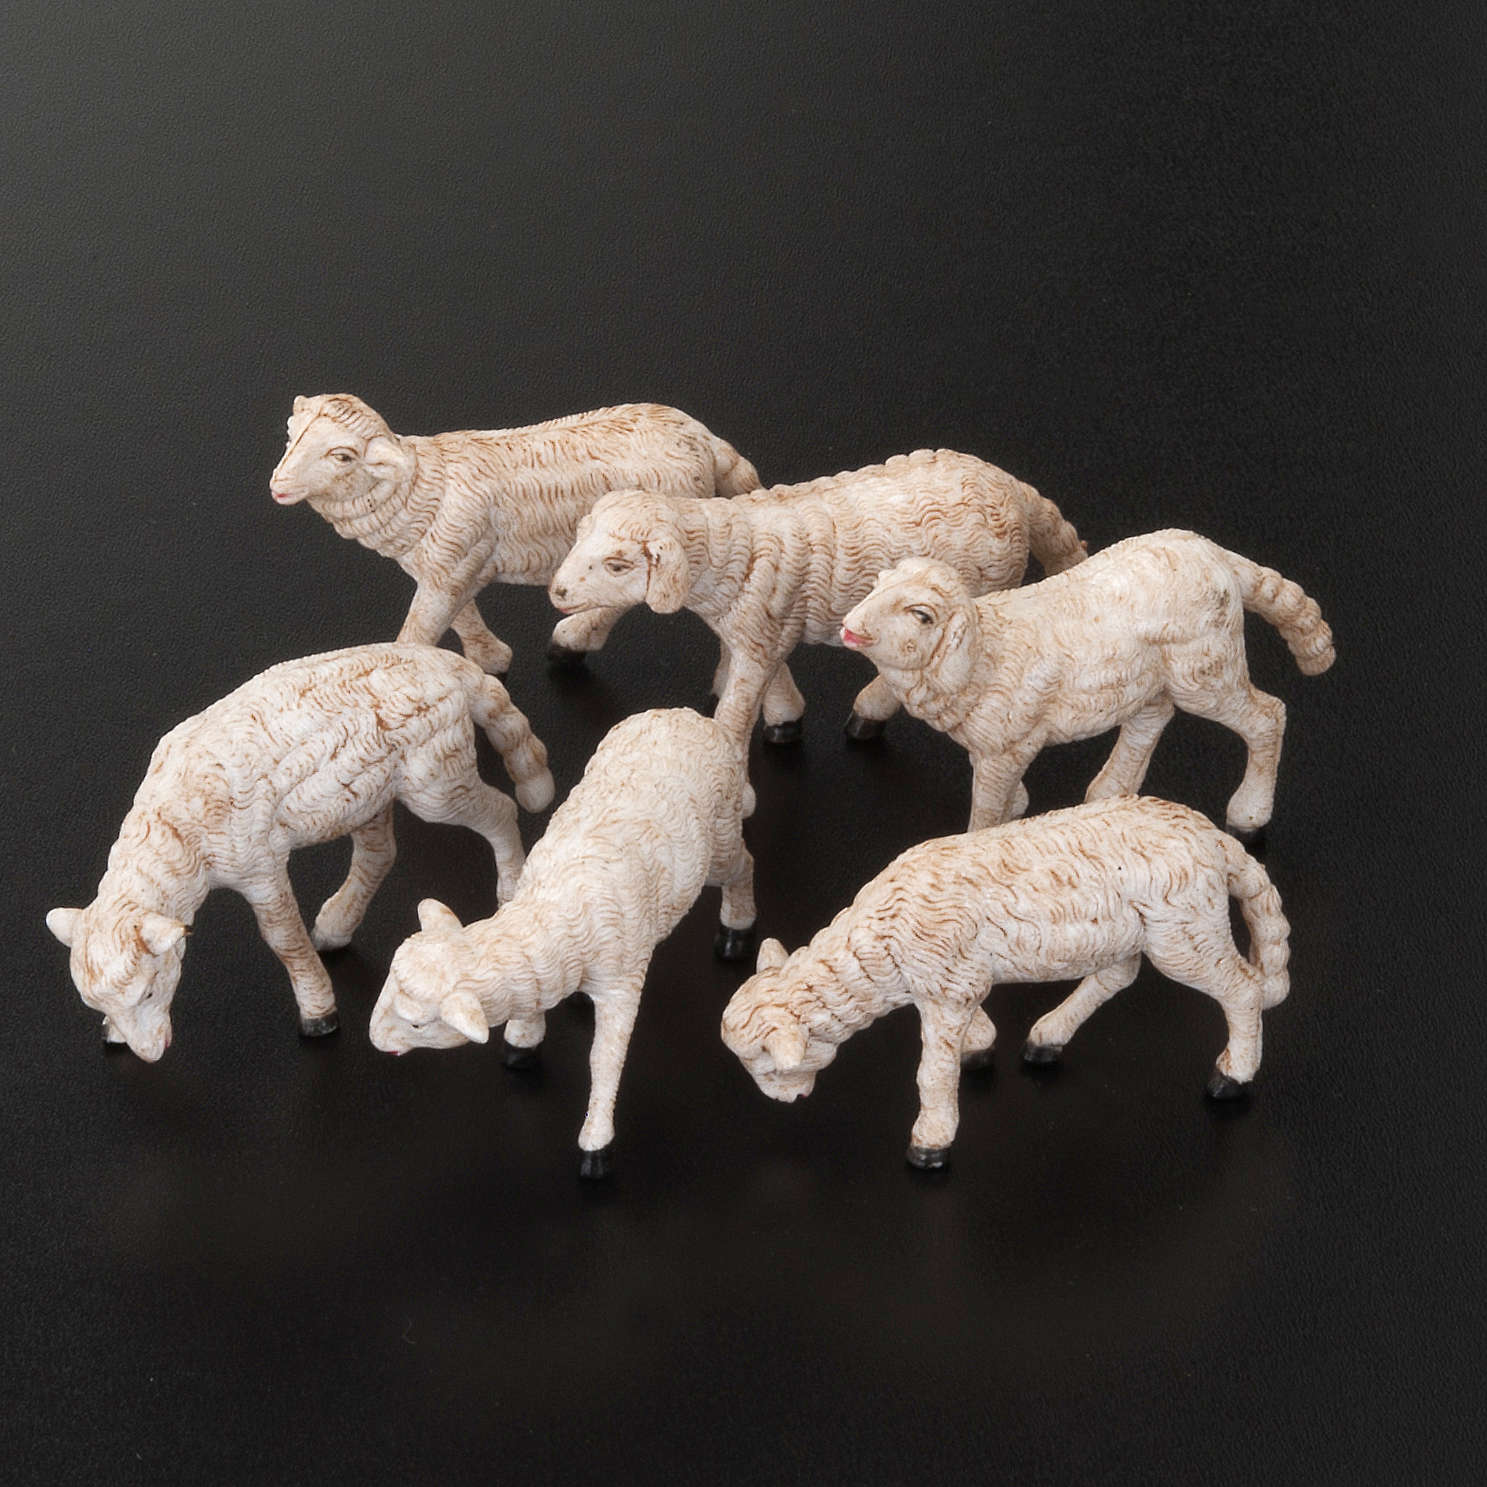 Nativity scene figurines, sheep 14 cm, 6 pieces 3